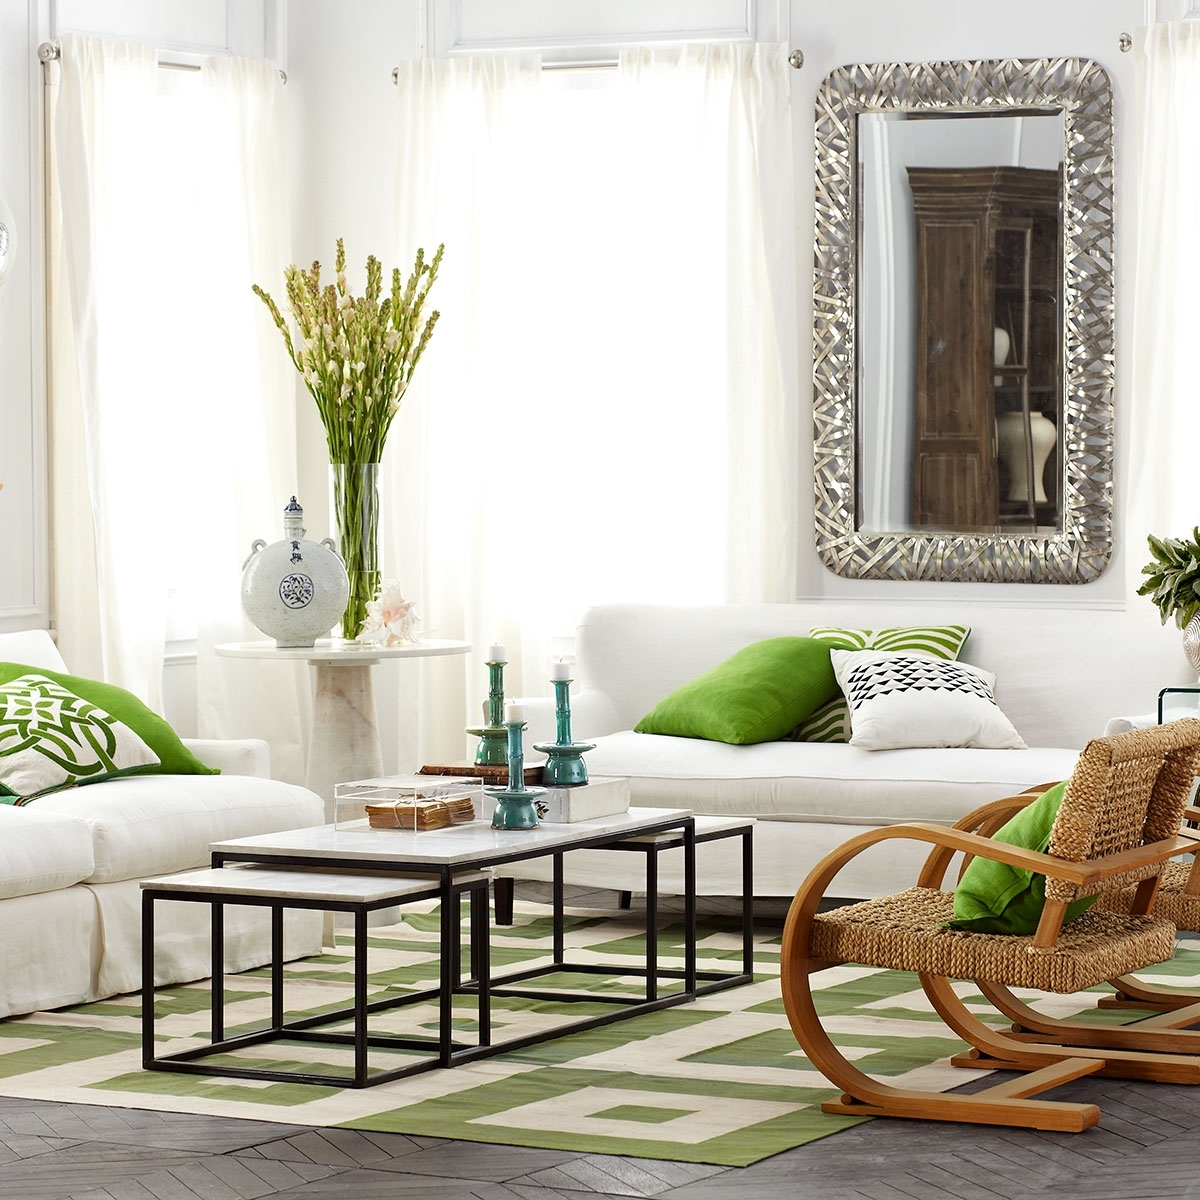 Wisteria Pertaining To Best And Newest Disappearing Coffee Tables (View 20 of 20)